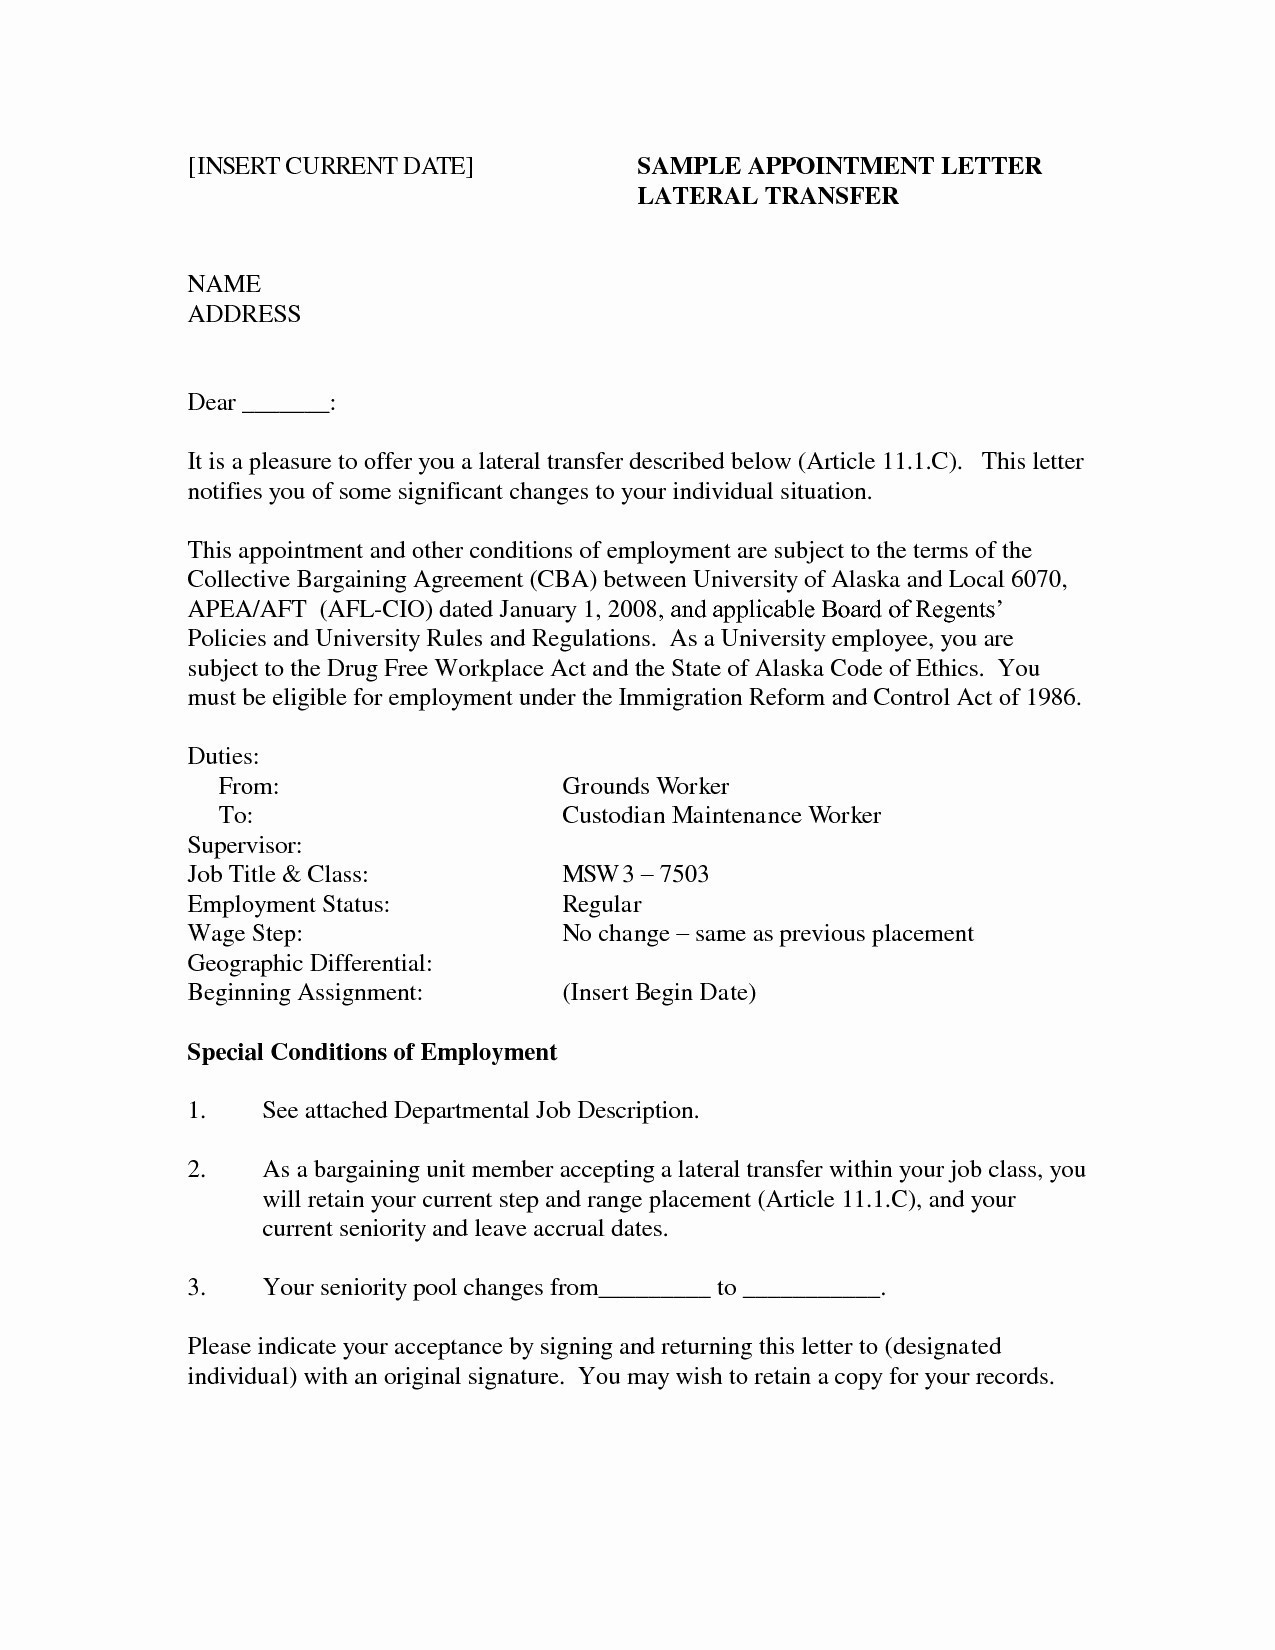 Behavior therapist Resume - 21 Behavior therapist Resume